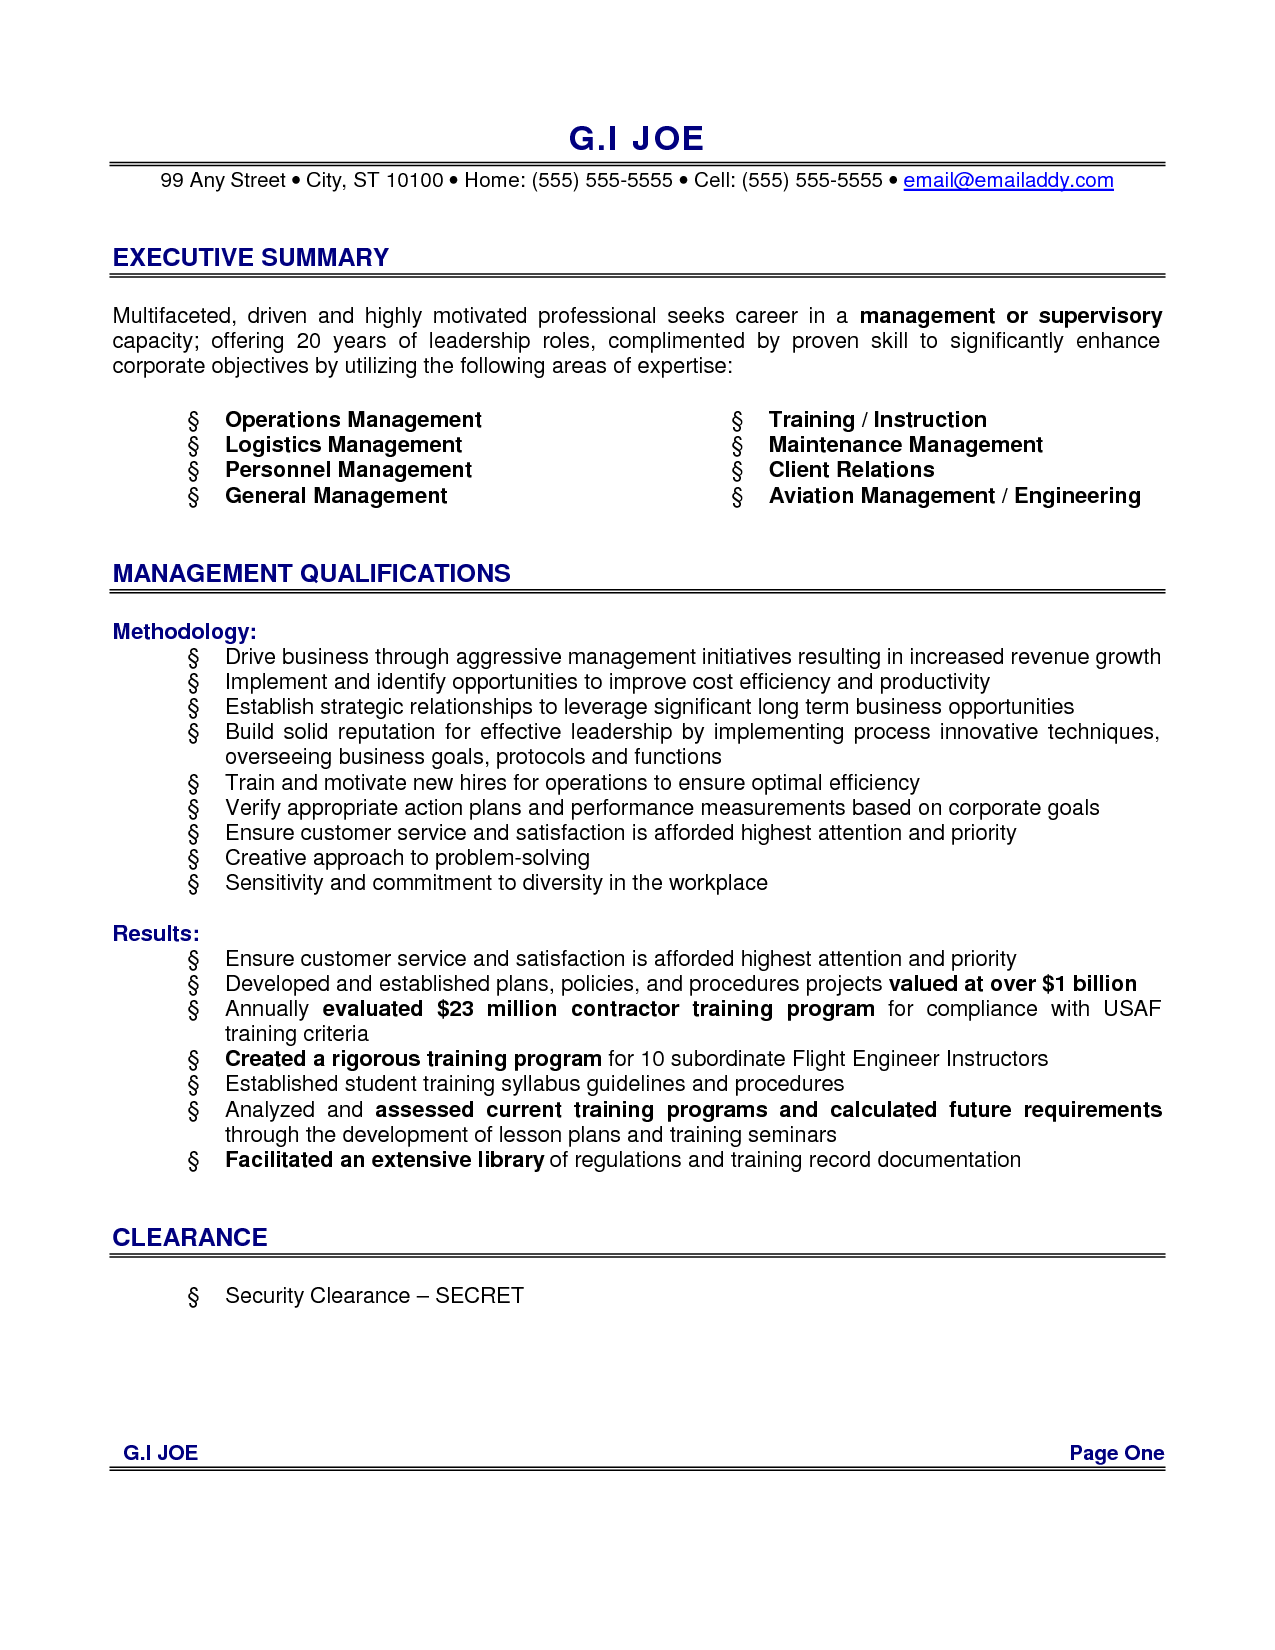 Resume-Examples For Executive Summary With Management ...